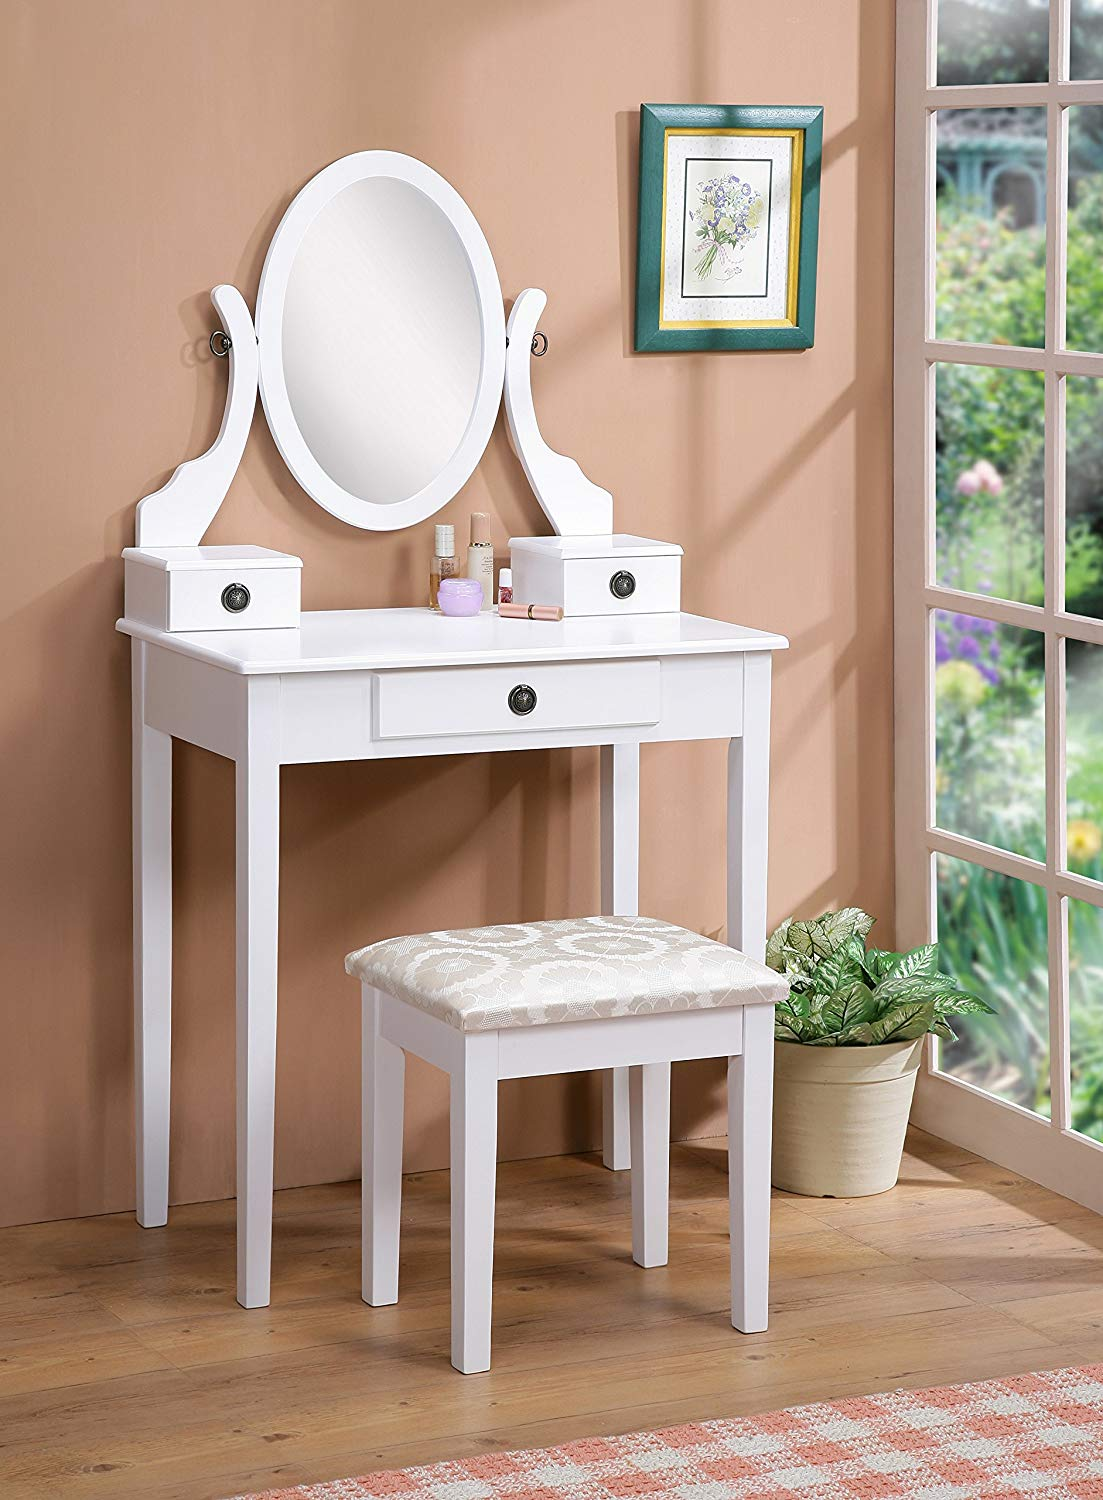 Vanity stool and desk